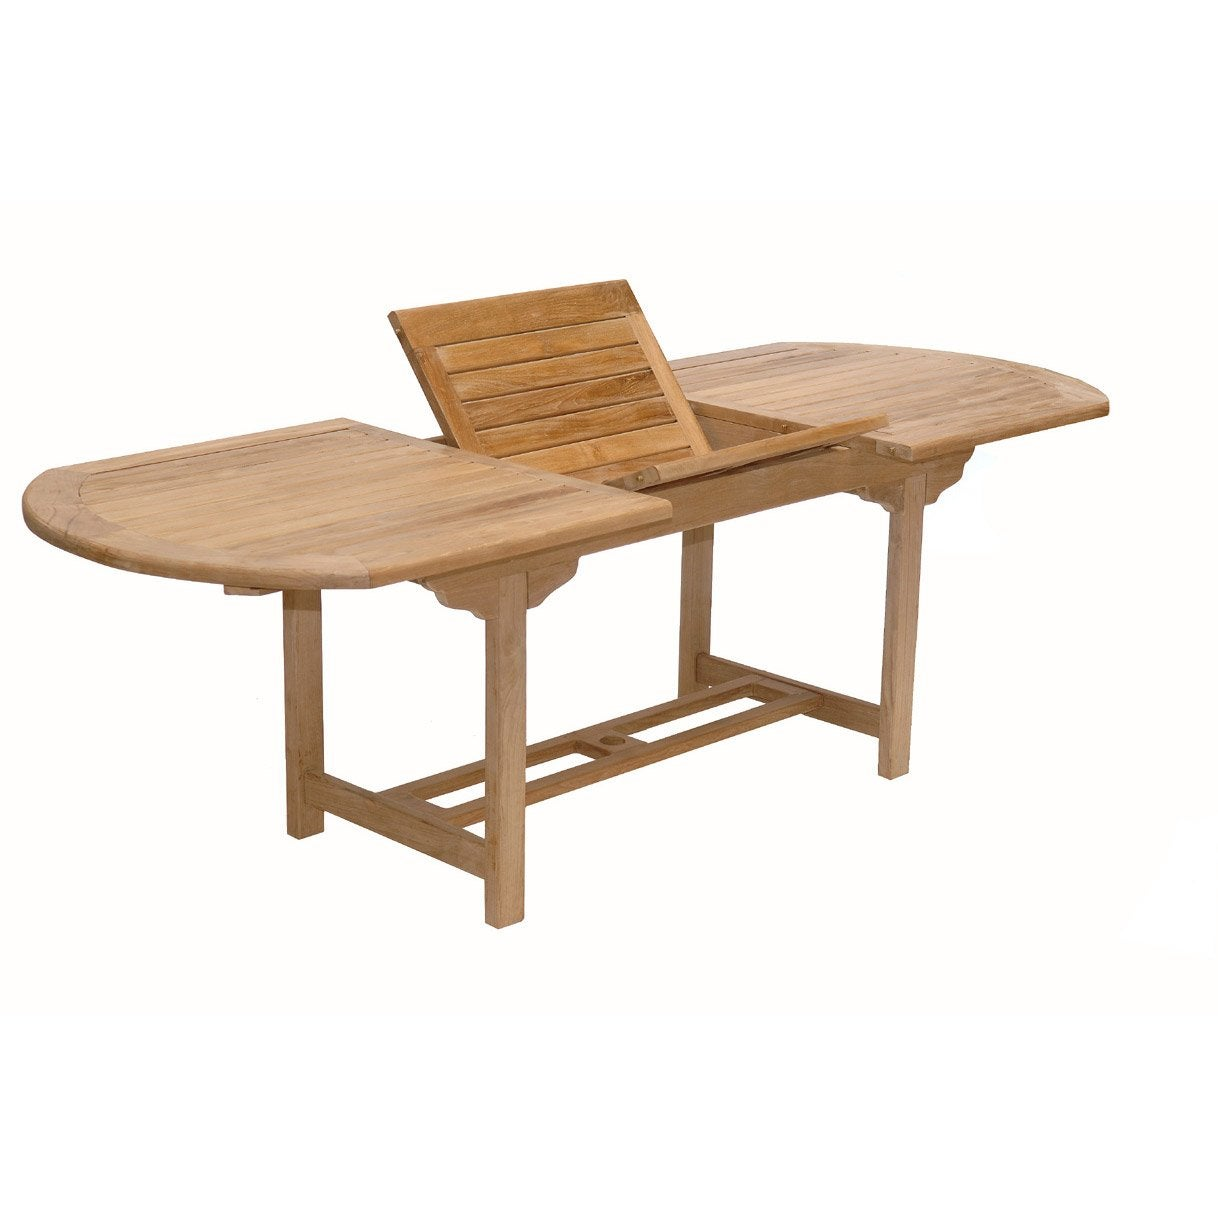 Table de jardin azur ovale naturel 8 personnes leroy merlin for Table ovale 10 personnes